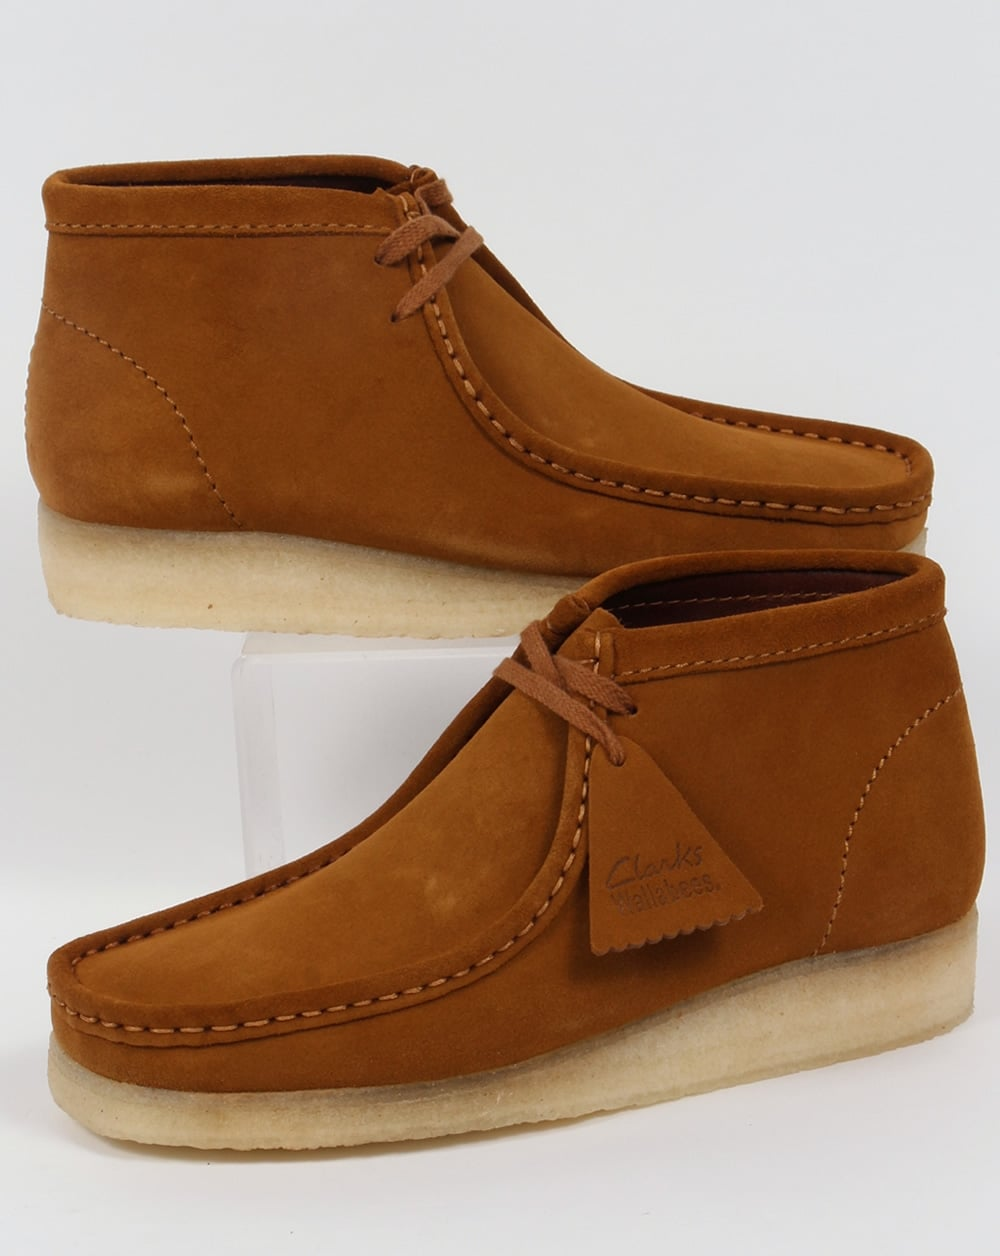 Shoes Like Clarks Wallabees